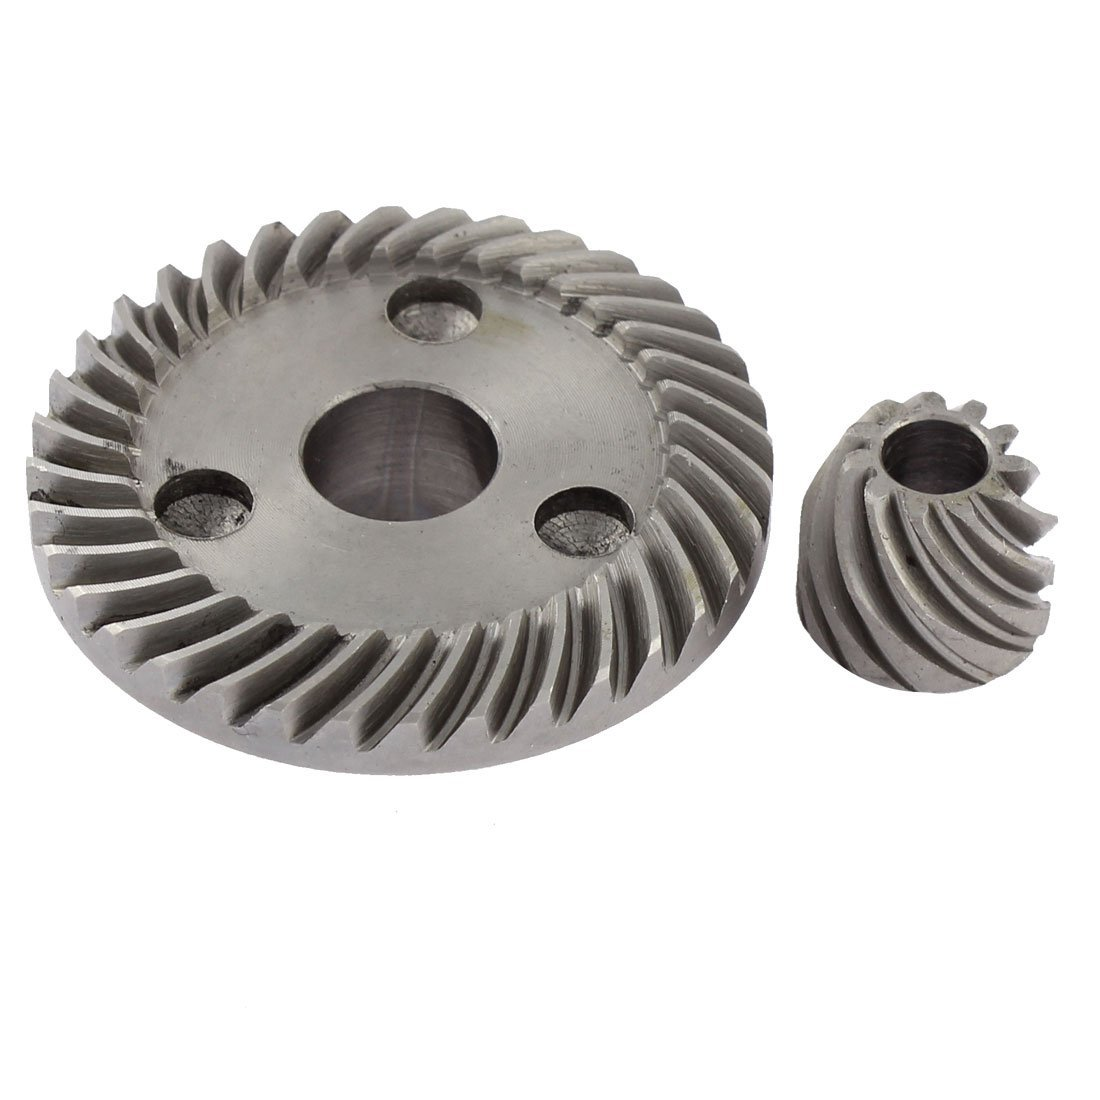 Dark Gray Spiral Set Conical Gear For Makita 9523 Angle Grinder